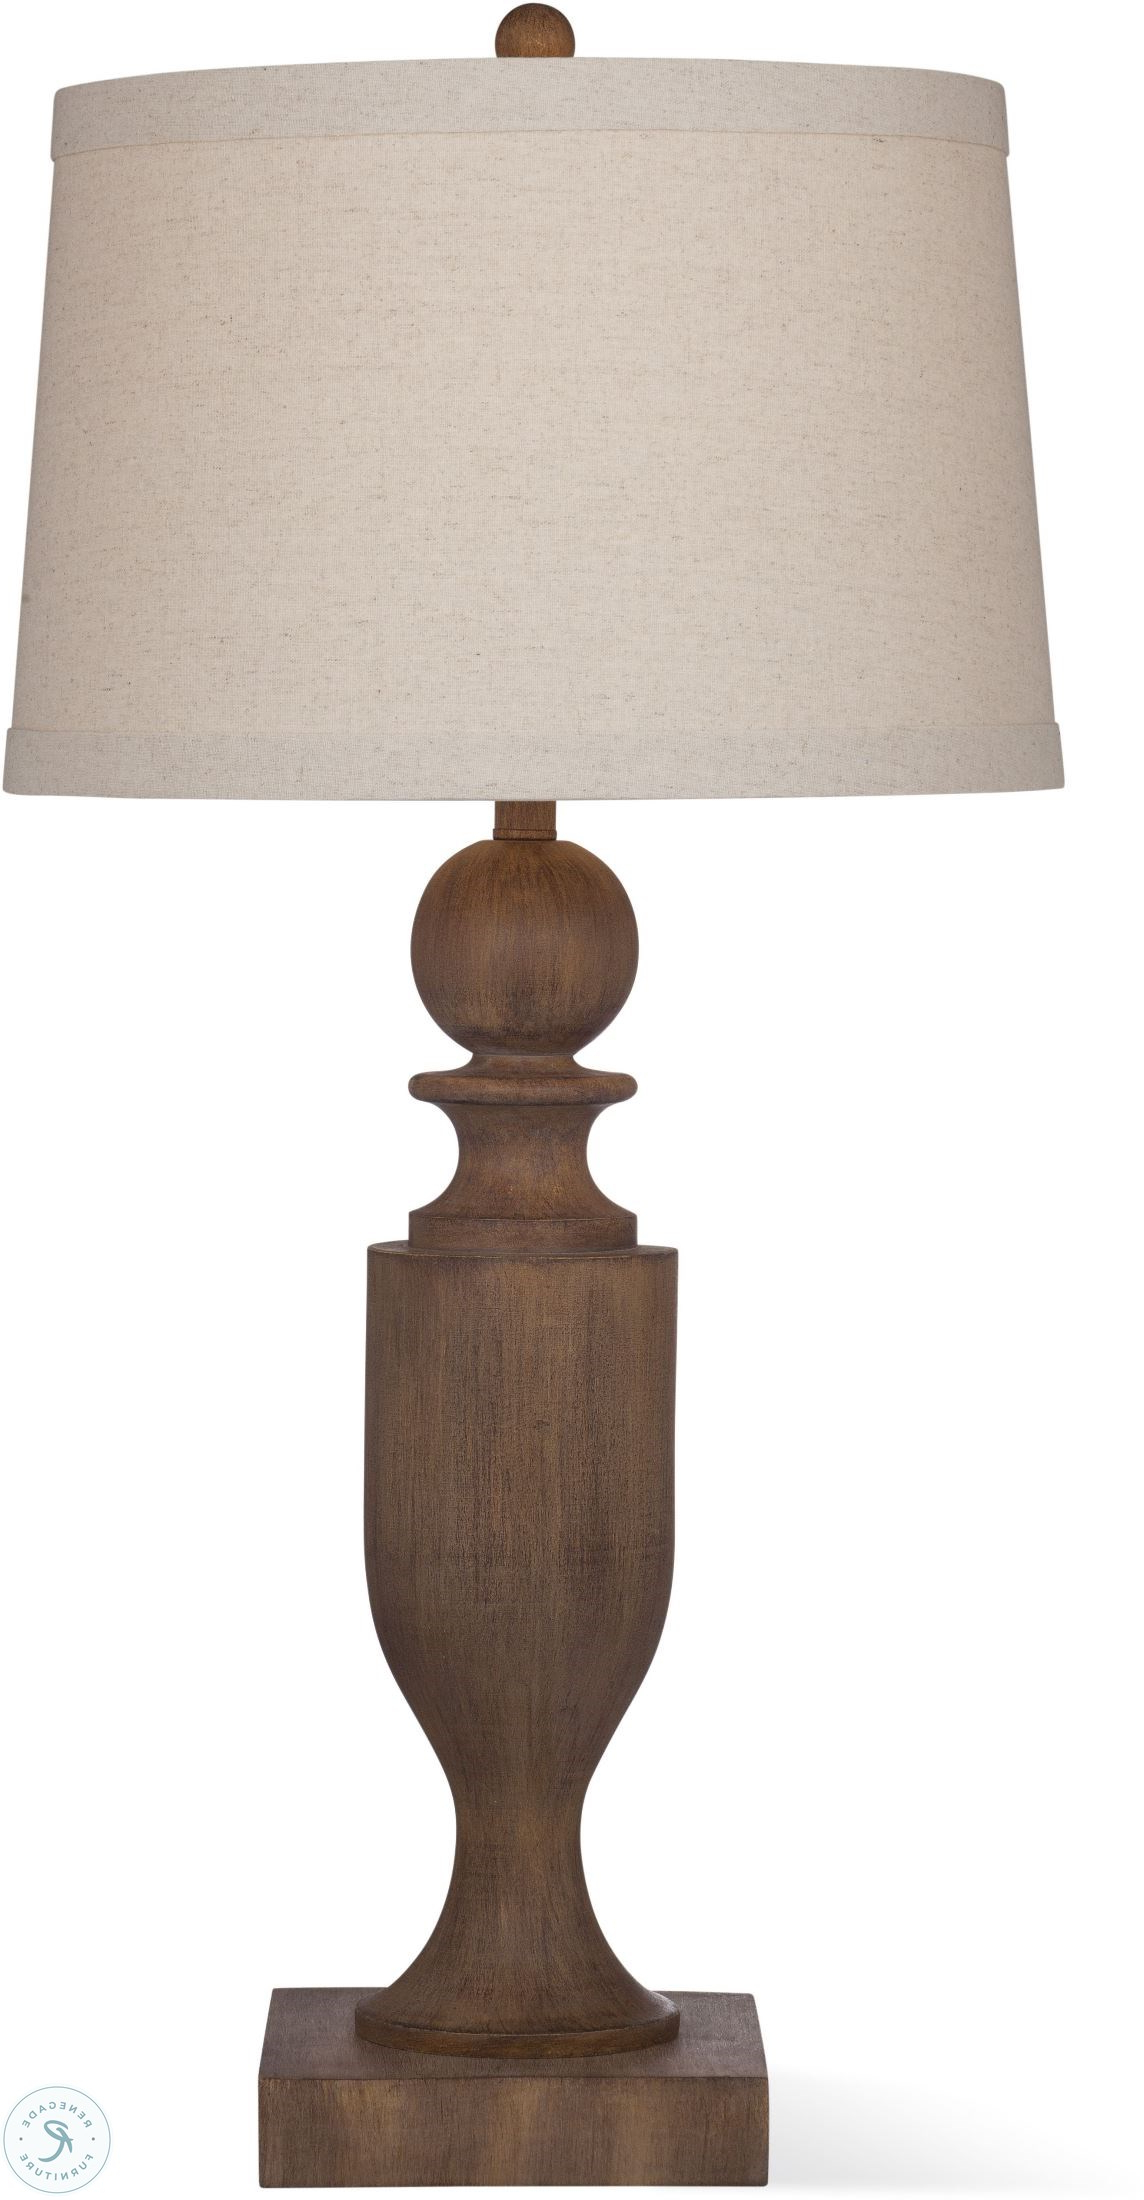 Bricolage Wood Tone Rena Table Lamp Throughout Best And Newest Rena Accent Mirrors (View 5 of 20)